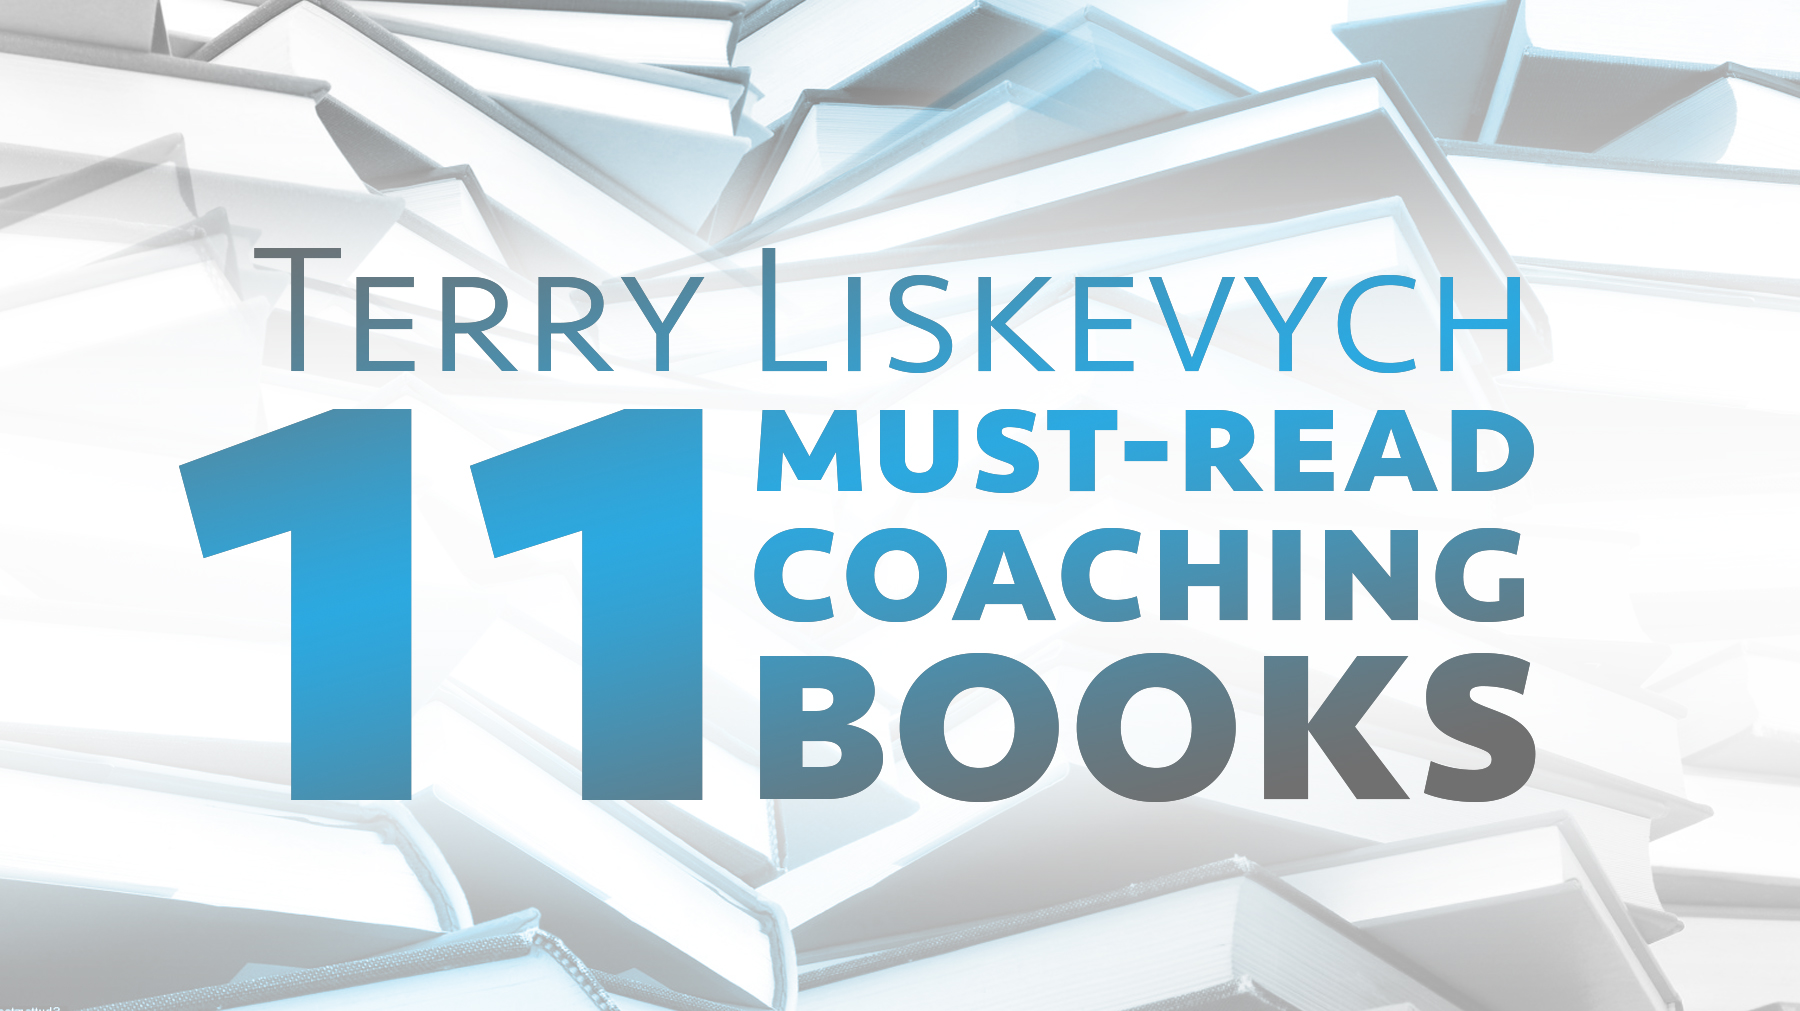 Terry Liskevych: My list of 11 must-read coaching books - The Art of Coaching  Volleyball